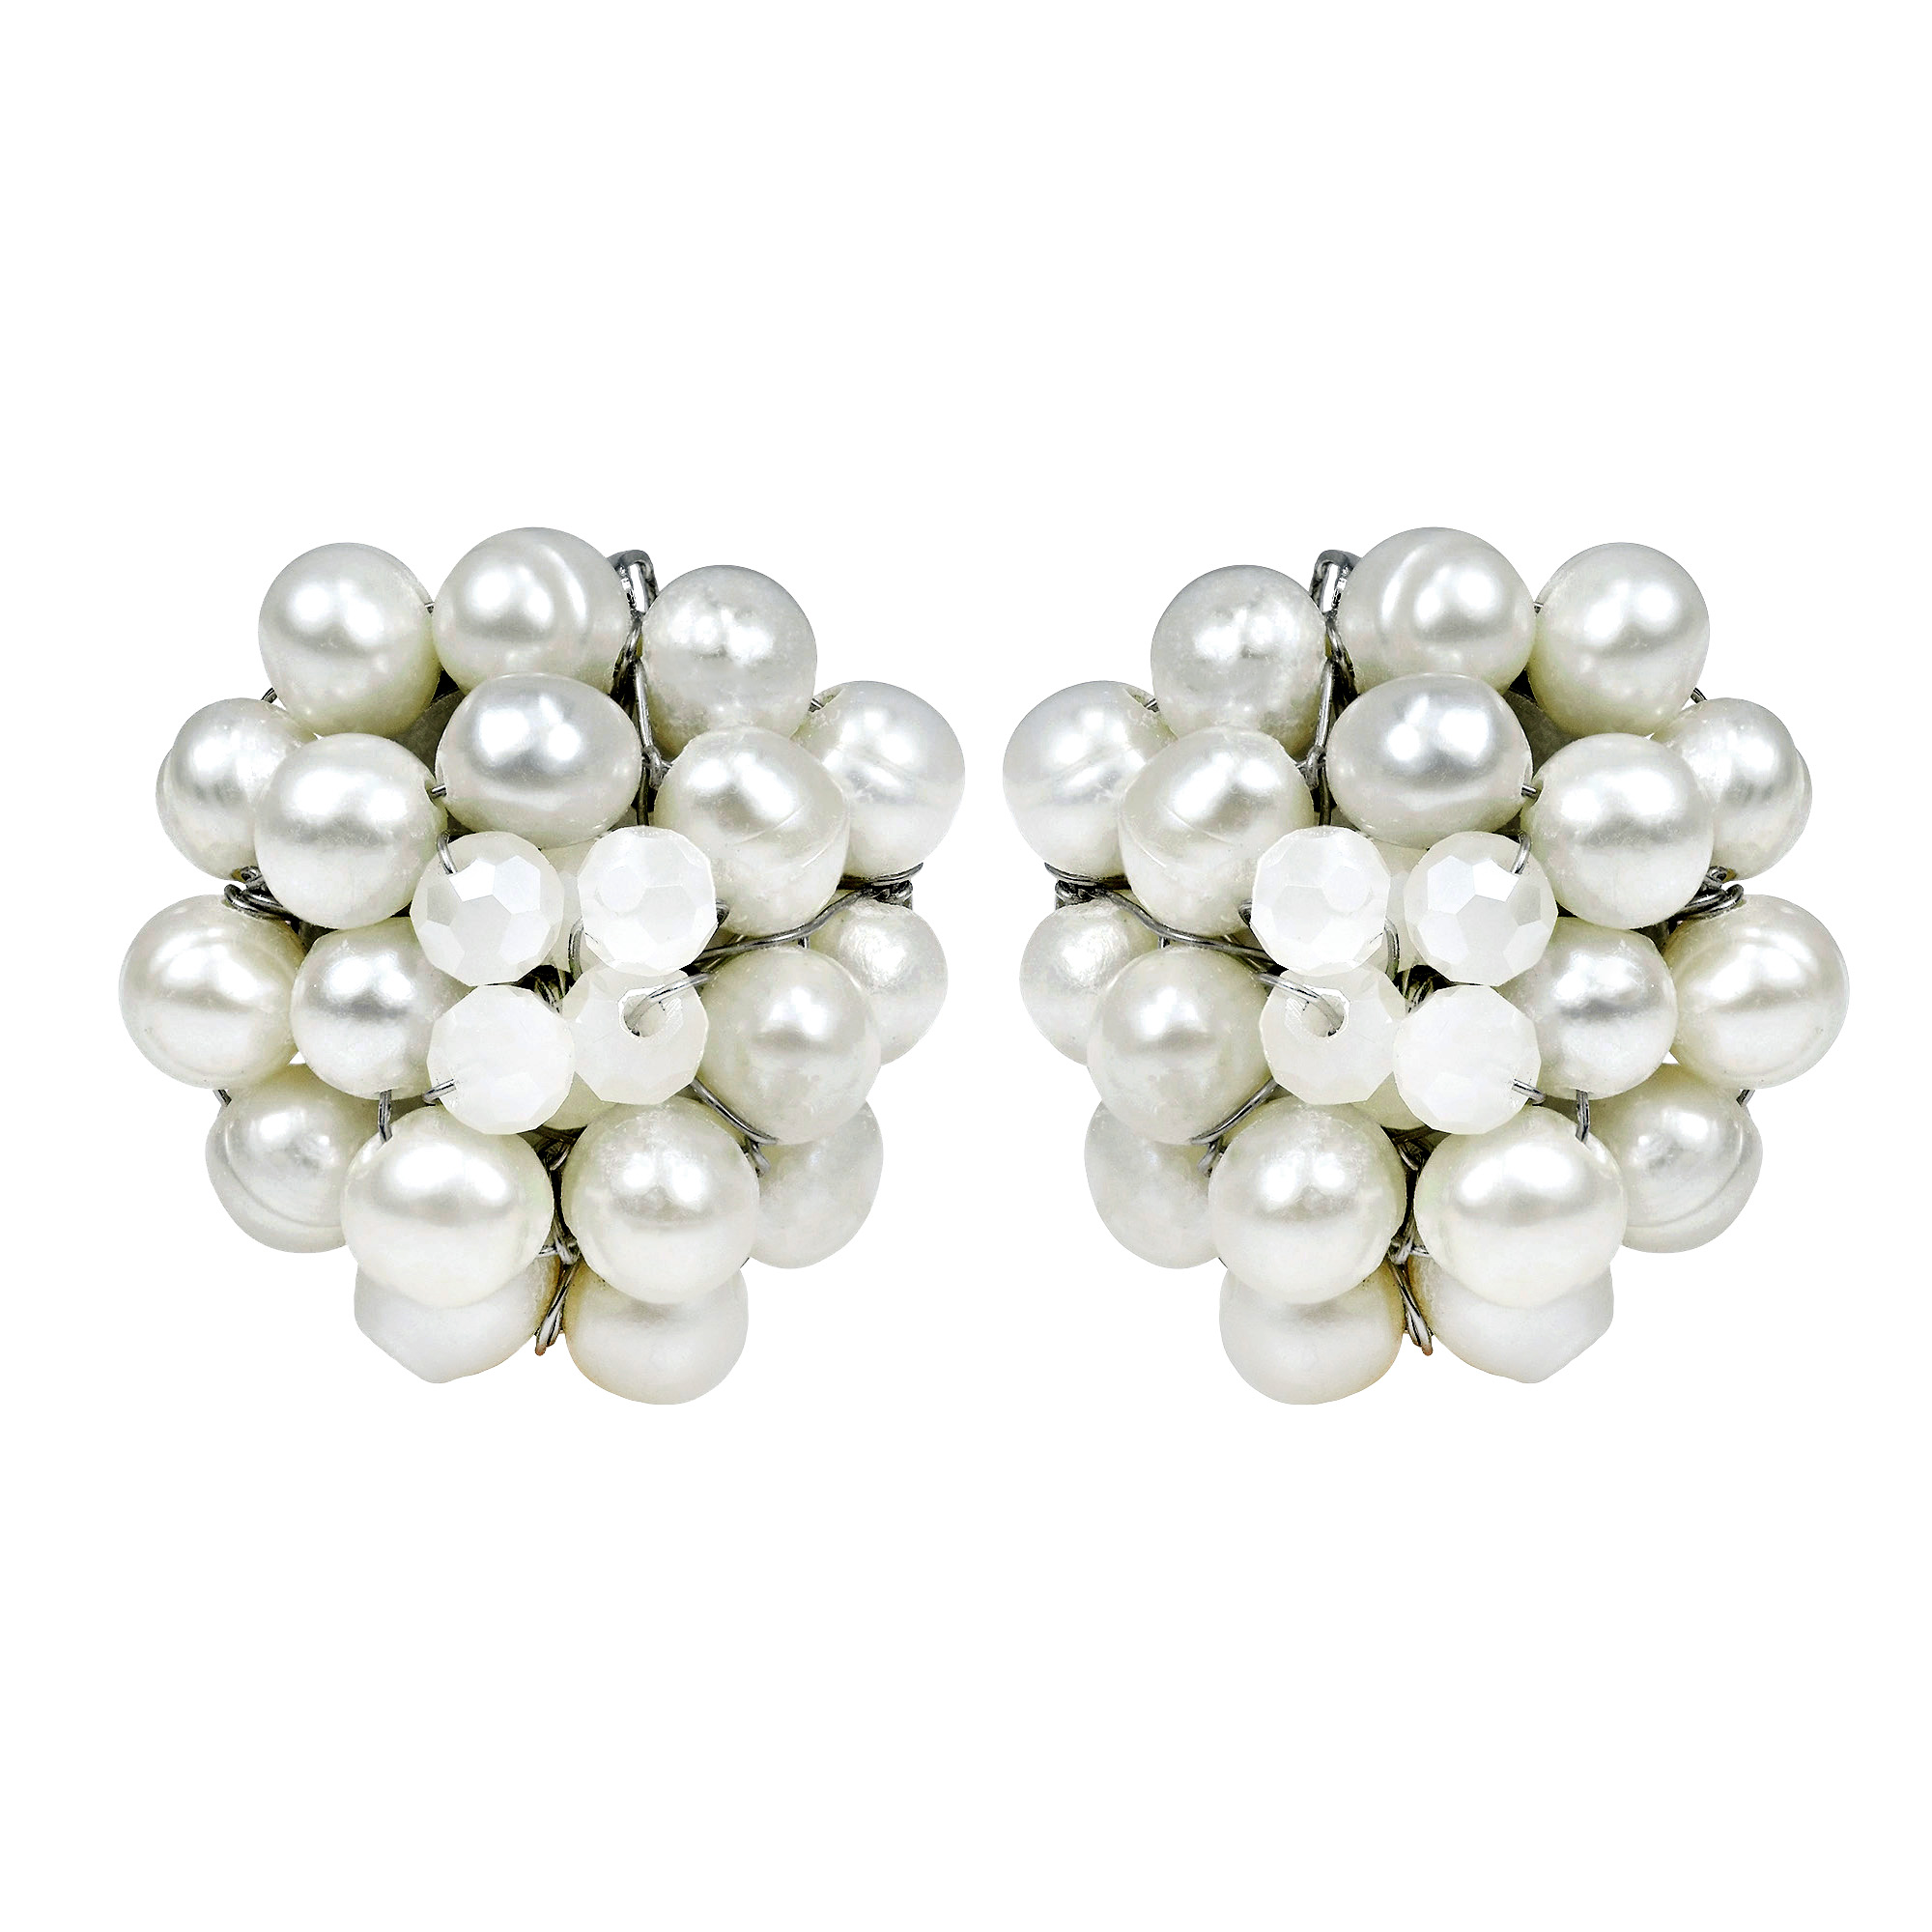 white button women earring pearl ets freshwater jewelry earrings for genuine aobei pearls